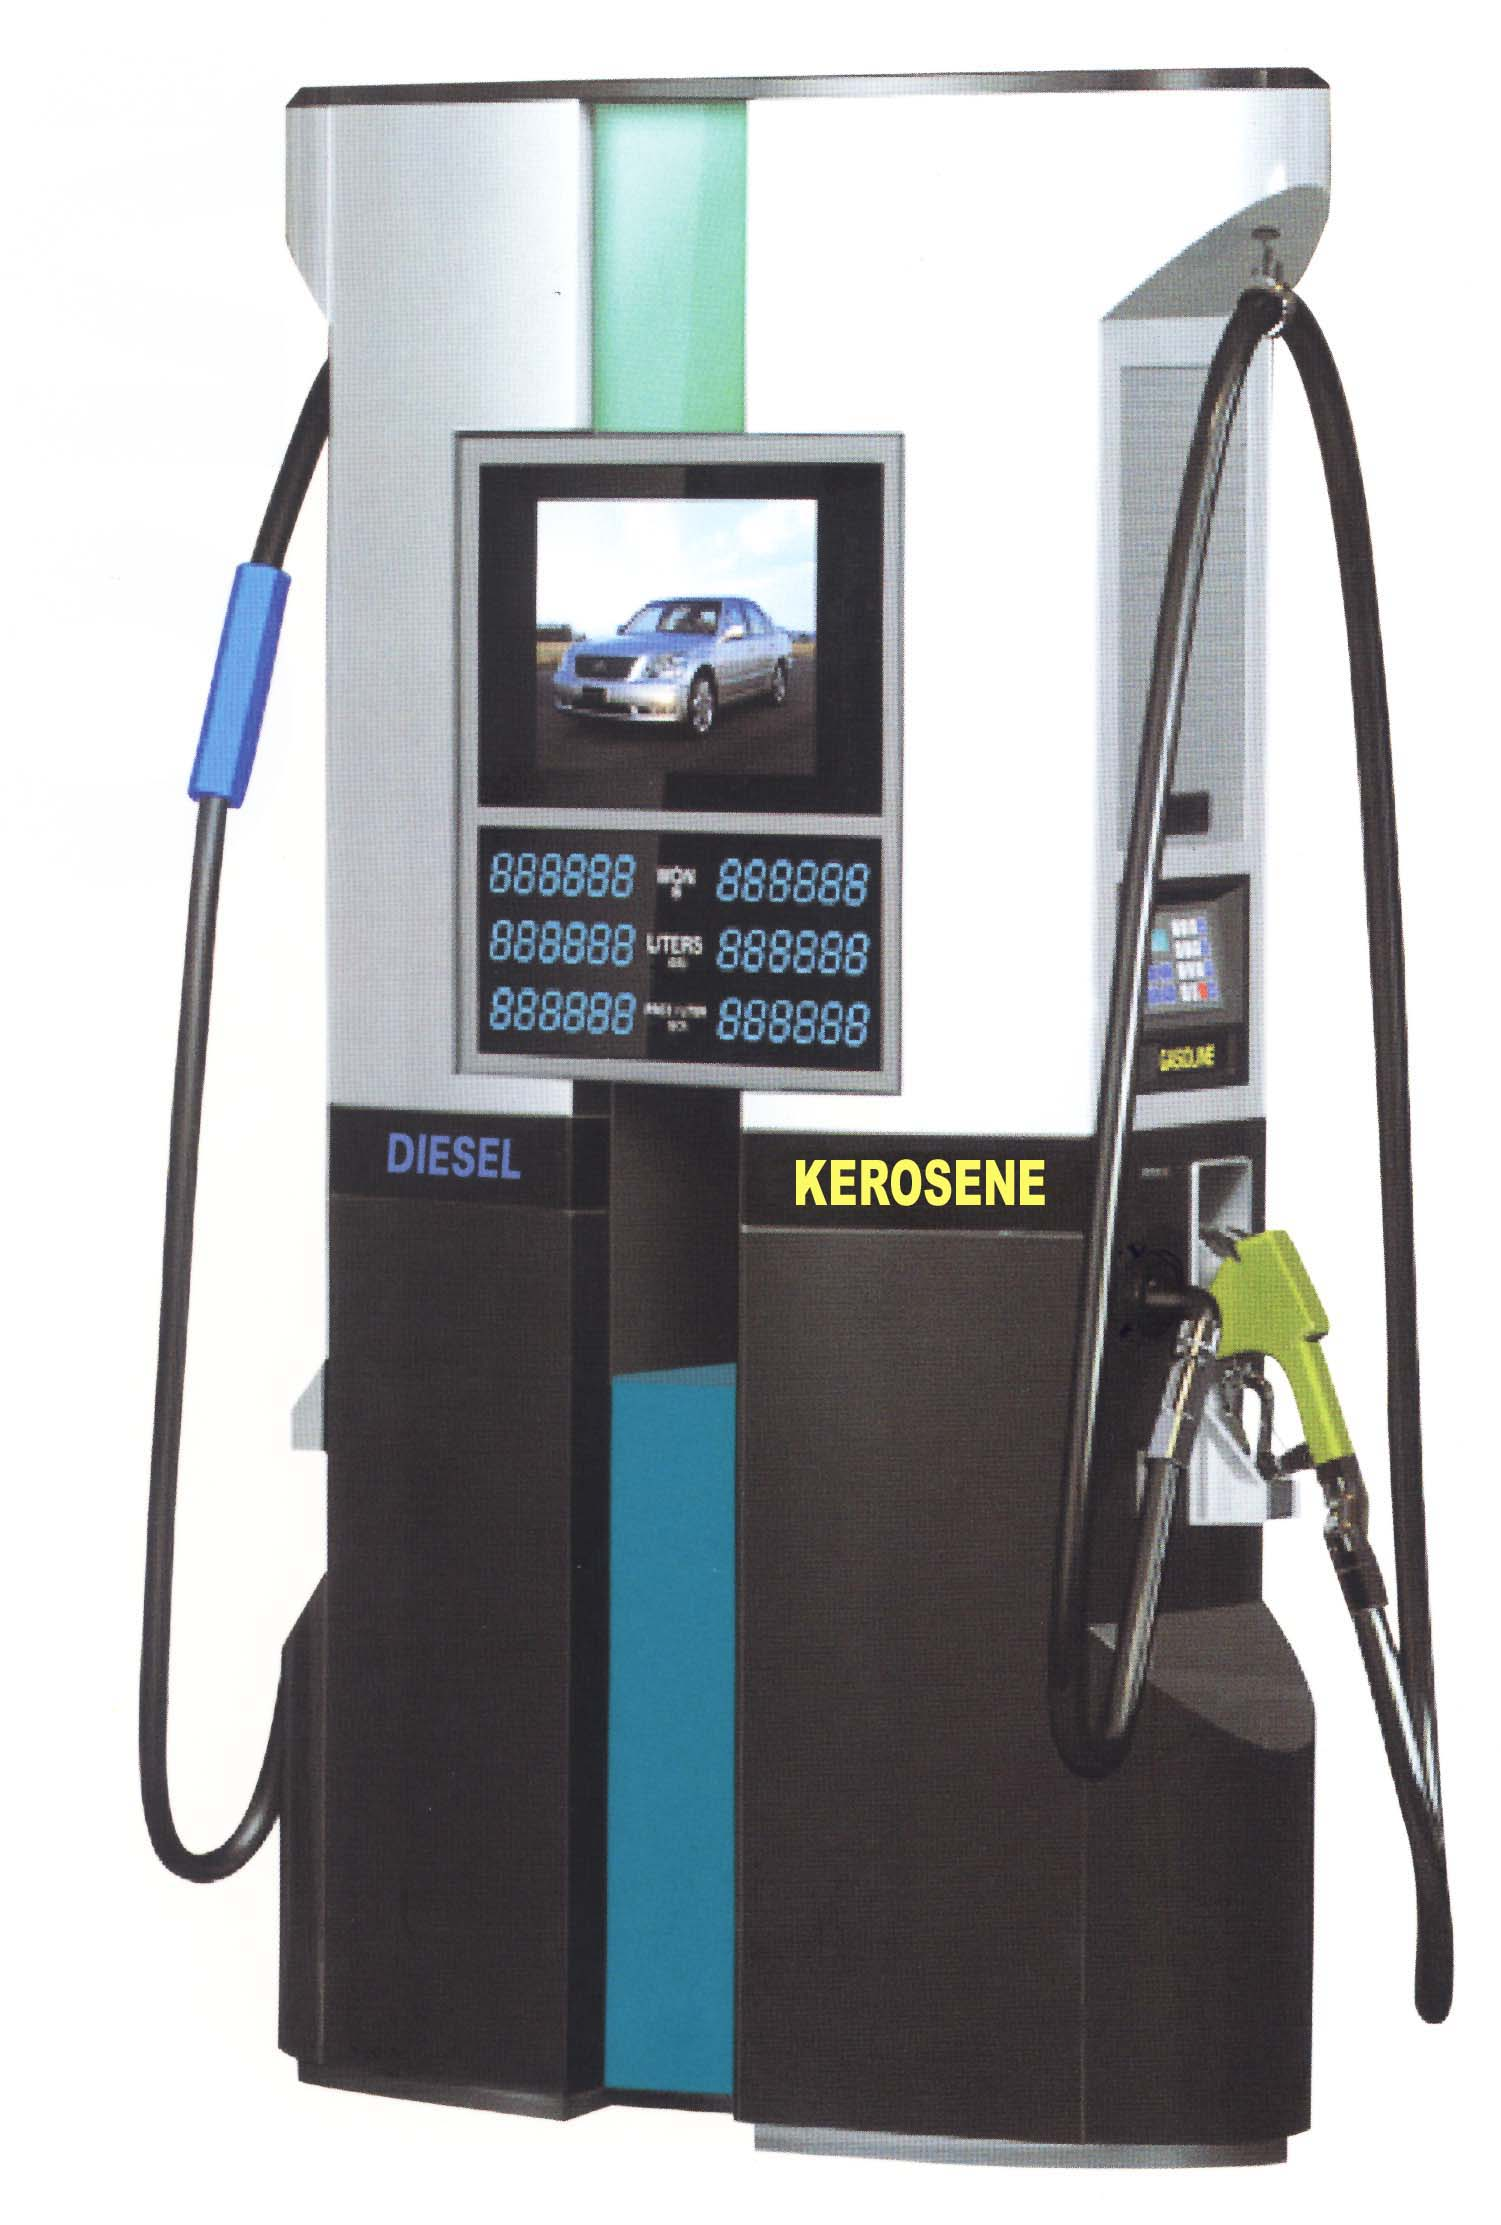 Fuel Dispenser For Gasoline,Diesel Dispenser